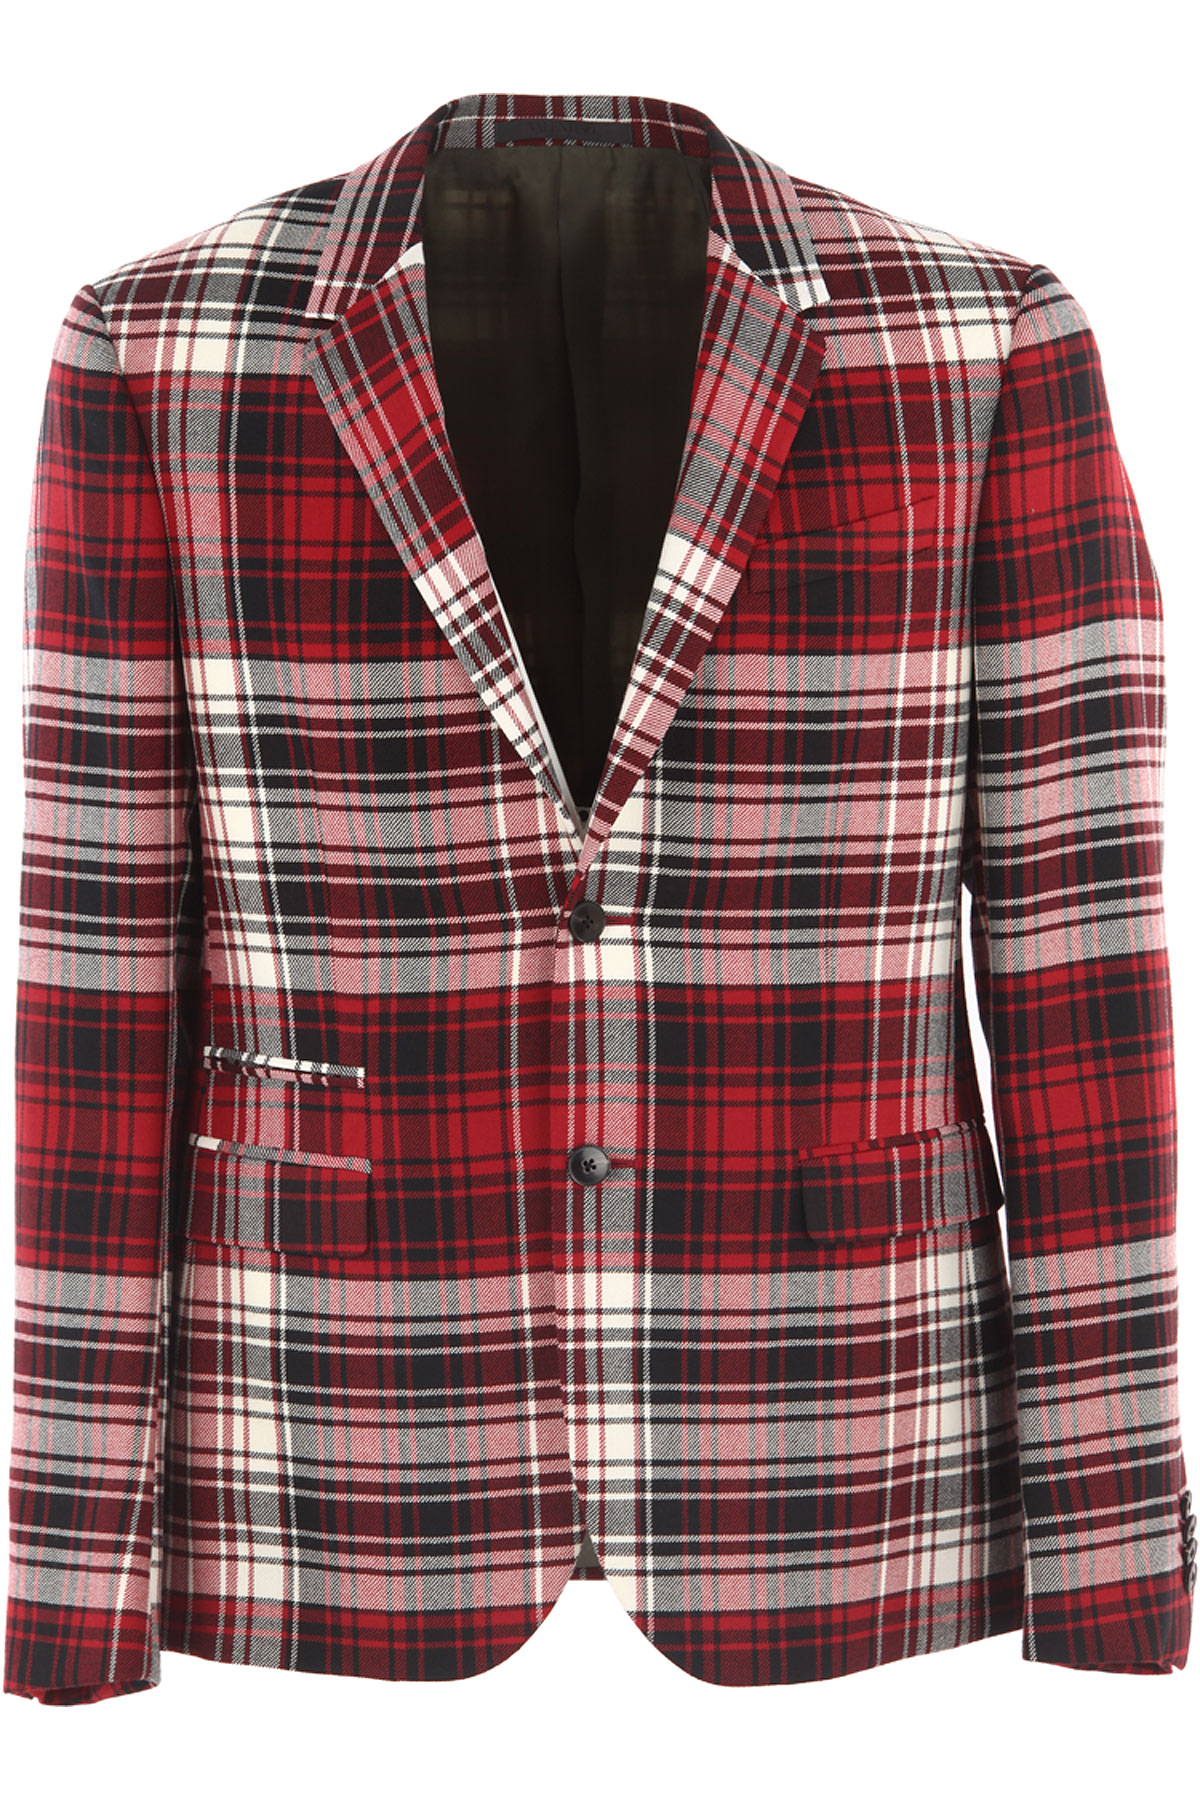 Image of Valentino Blazer for Men, Sport Coat On Sale in Outlet, Red Check, Virgin wool, 2017, L M